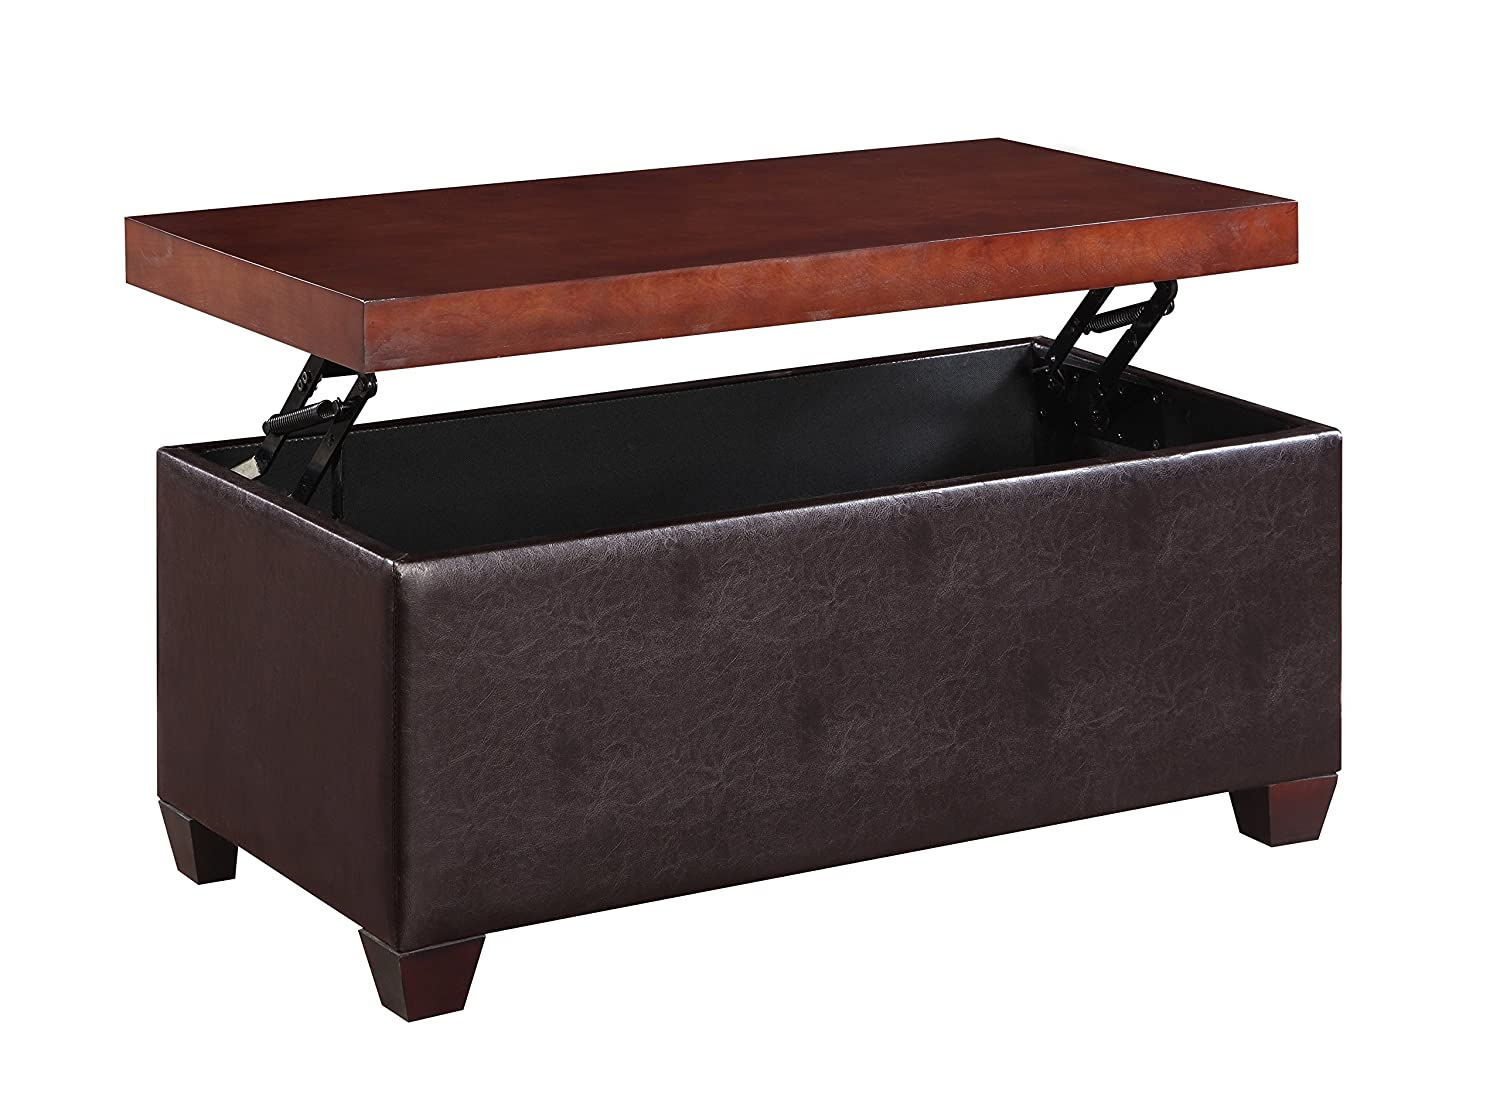 5 Faux Leather Coffee Table Ottoman Combo 39 S For Your Stylish Home The Vegan Banana